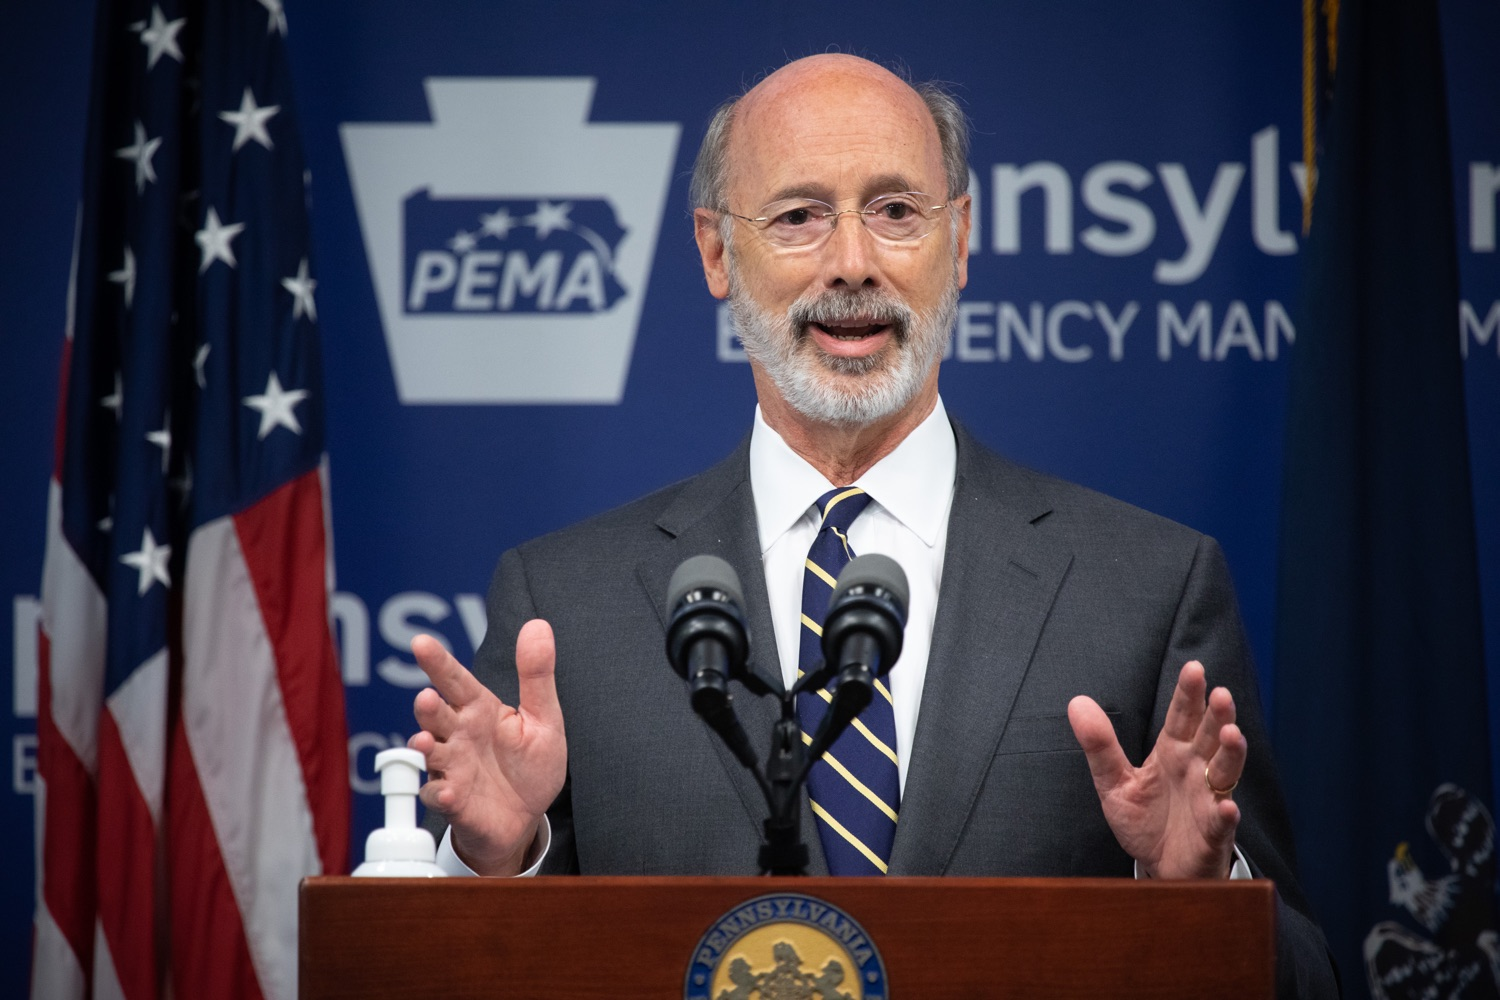 """<a href=""""https://filesource.wostreaming.net/commonwealthofpa/photo/18165_GOV_covid_mitigation_dz_12.jpg"""" target=""""_blank"""">⇣Download Photo<br></a>Pennsylvania Governor Tom Wolf speaking with the press. Governor Tom Wolf and Sec. of Health Dr. Rachel Levine today signed new orders for targeted mitigation efforts in response to the recent rise in COVID cases, primarily in southwest Pennsylvania, but also in other counties in the state, influencing the decision for statewide mitigation efforts for bars and restaurants, gatherings and telework. The new orders take effect at 12:01 a.m., Thursday, July 16, 2020.  Harrisburg, - July 15, 2020"""